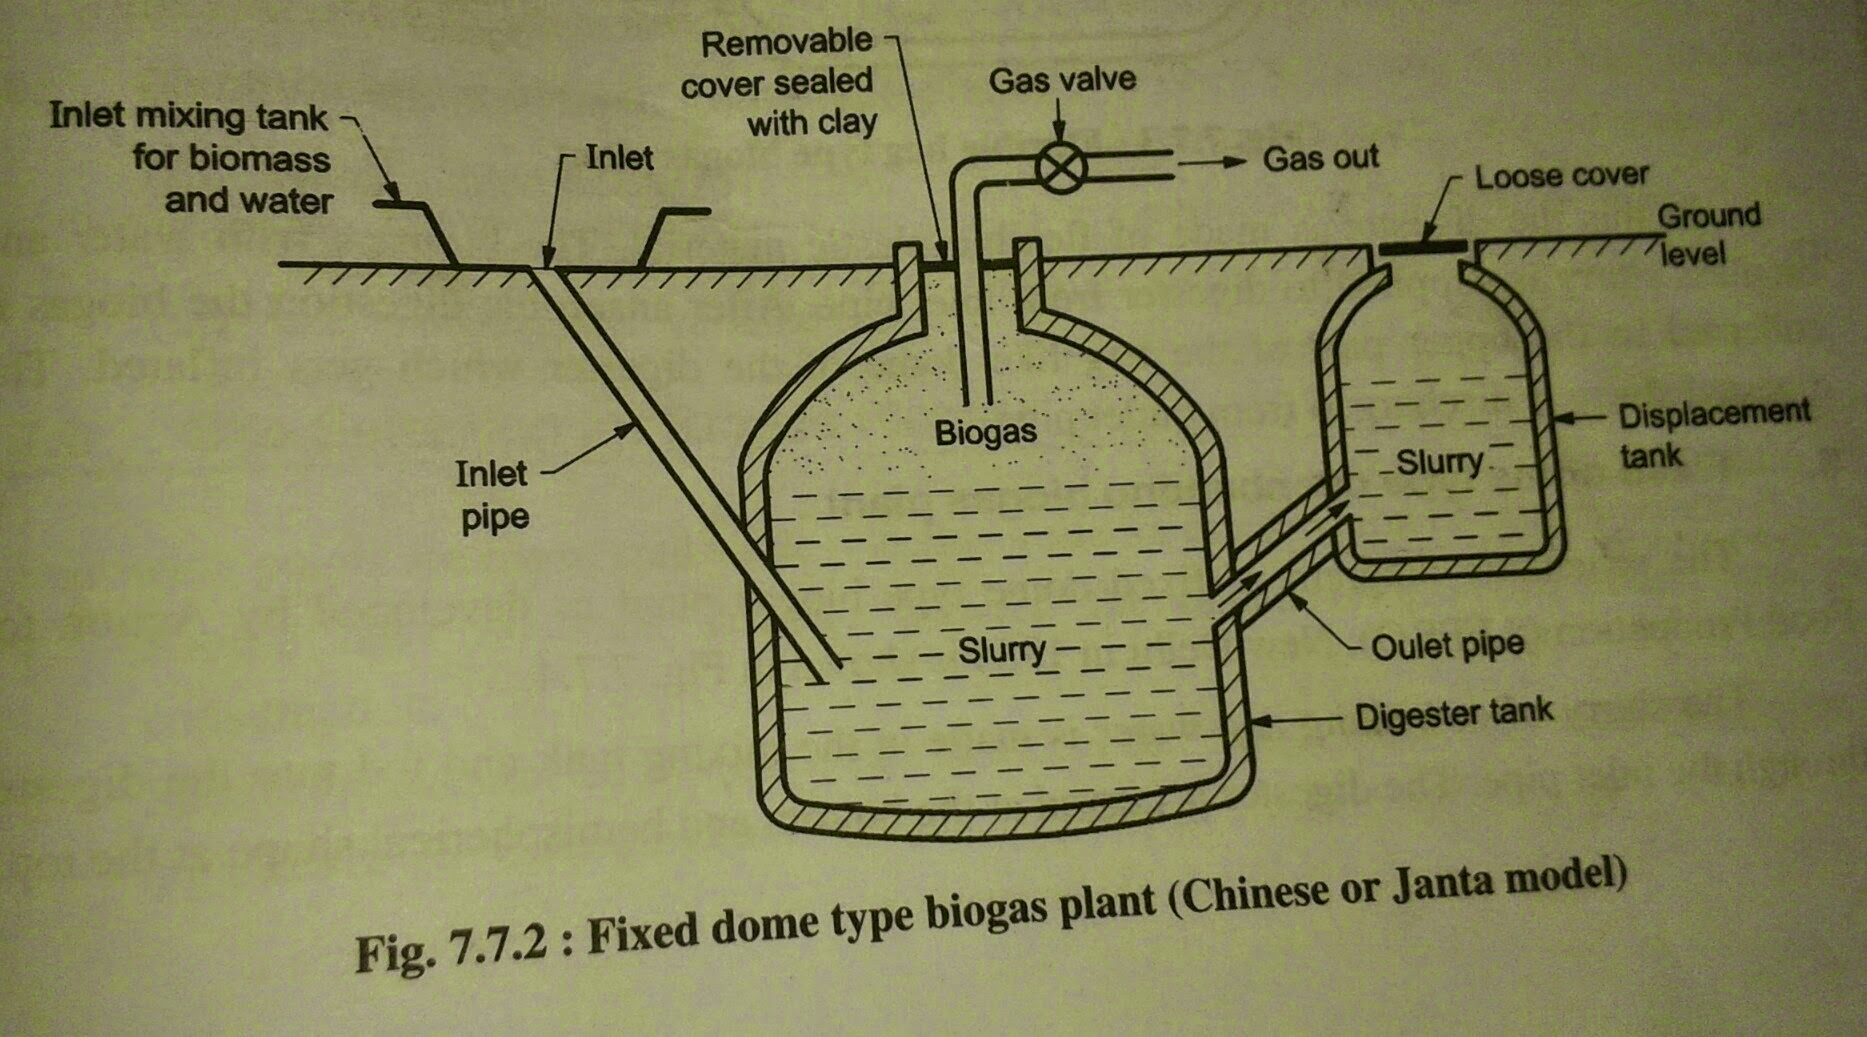 Fixed Dome Type Biogas Chinese Janta Diagram Plant